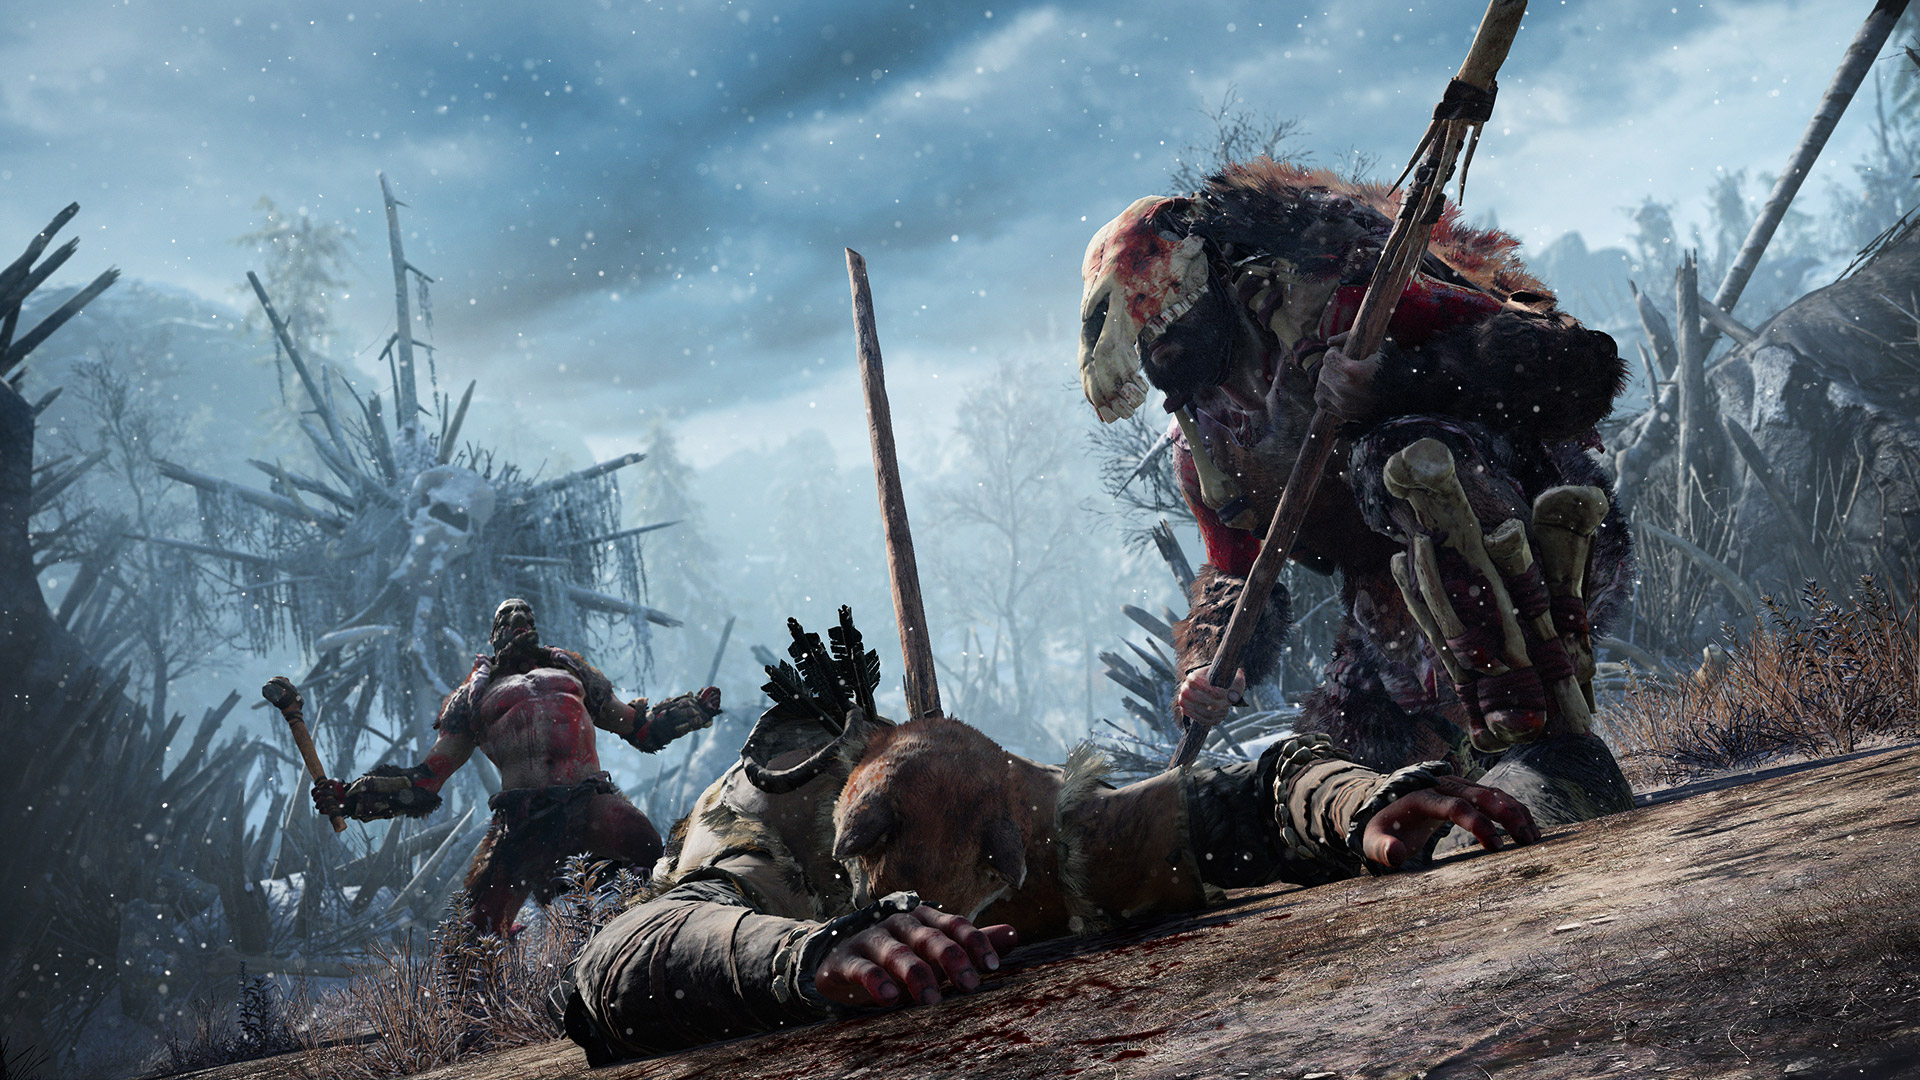 Far Cry Primal's deadliest weapons are the predators you can